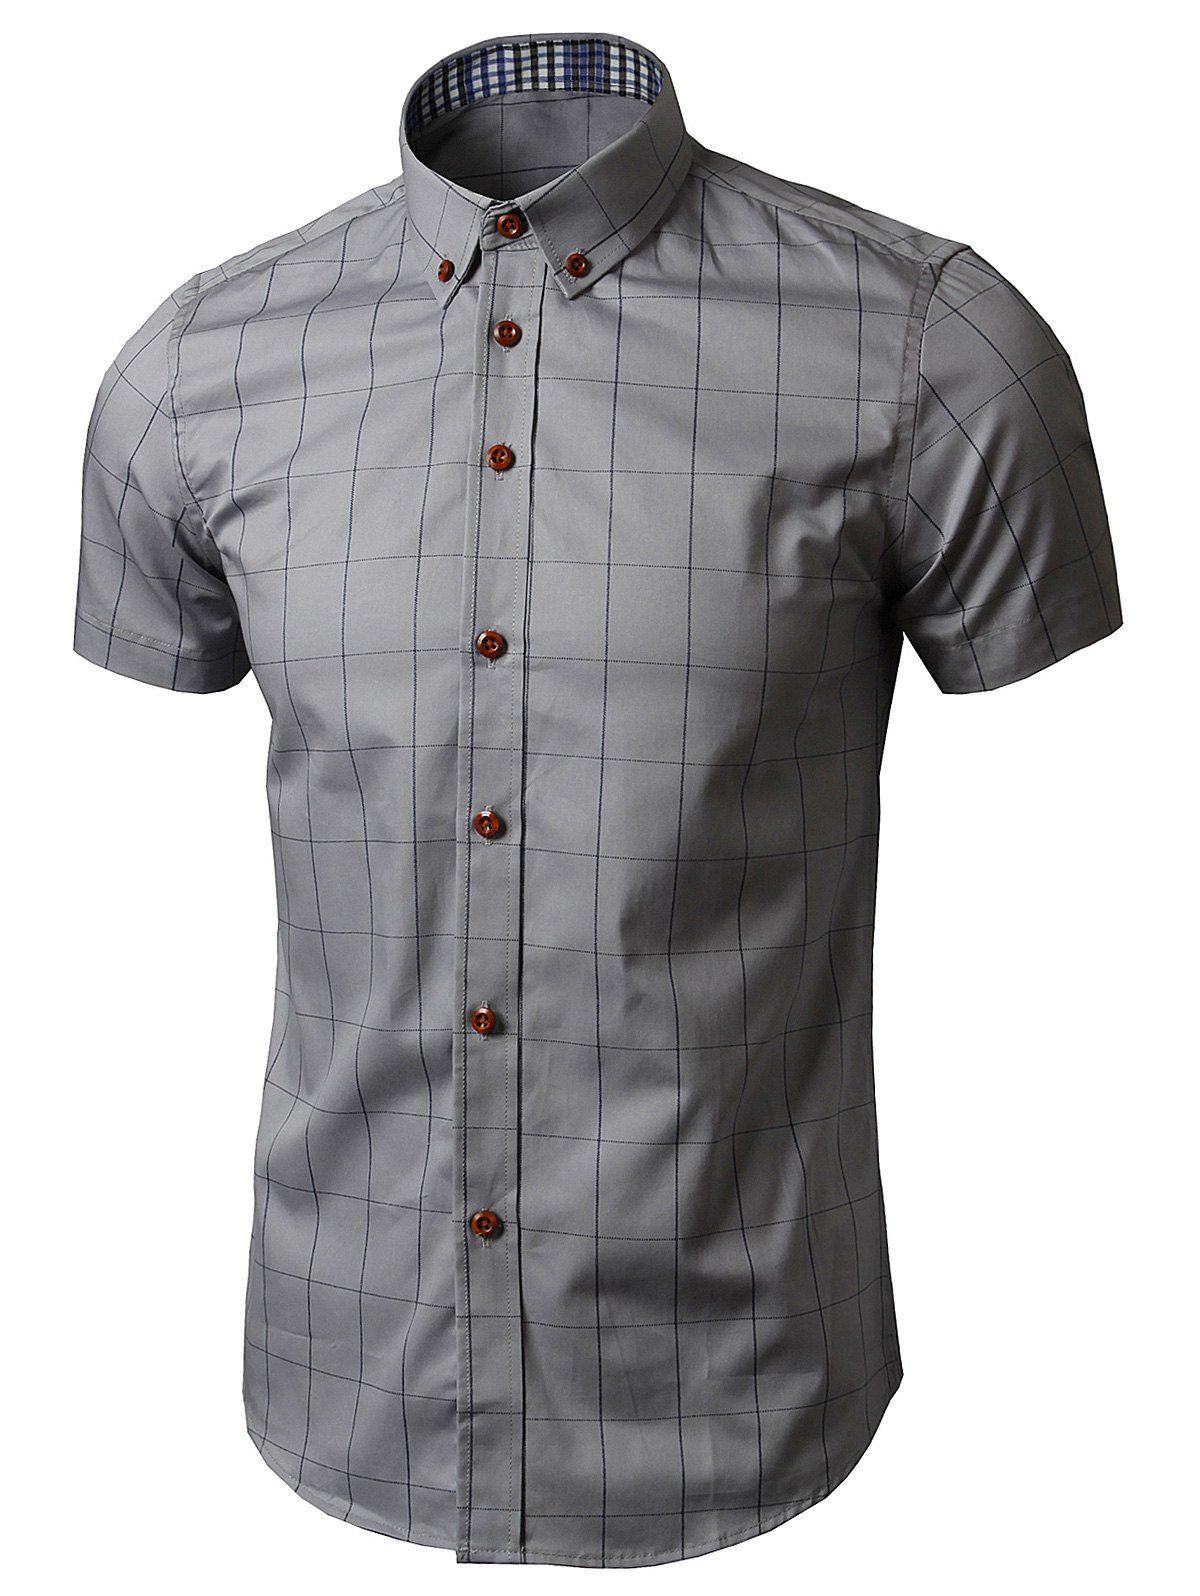 Mens Short Sleeve Dress Shirts On Sale